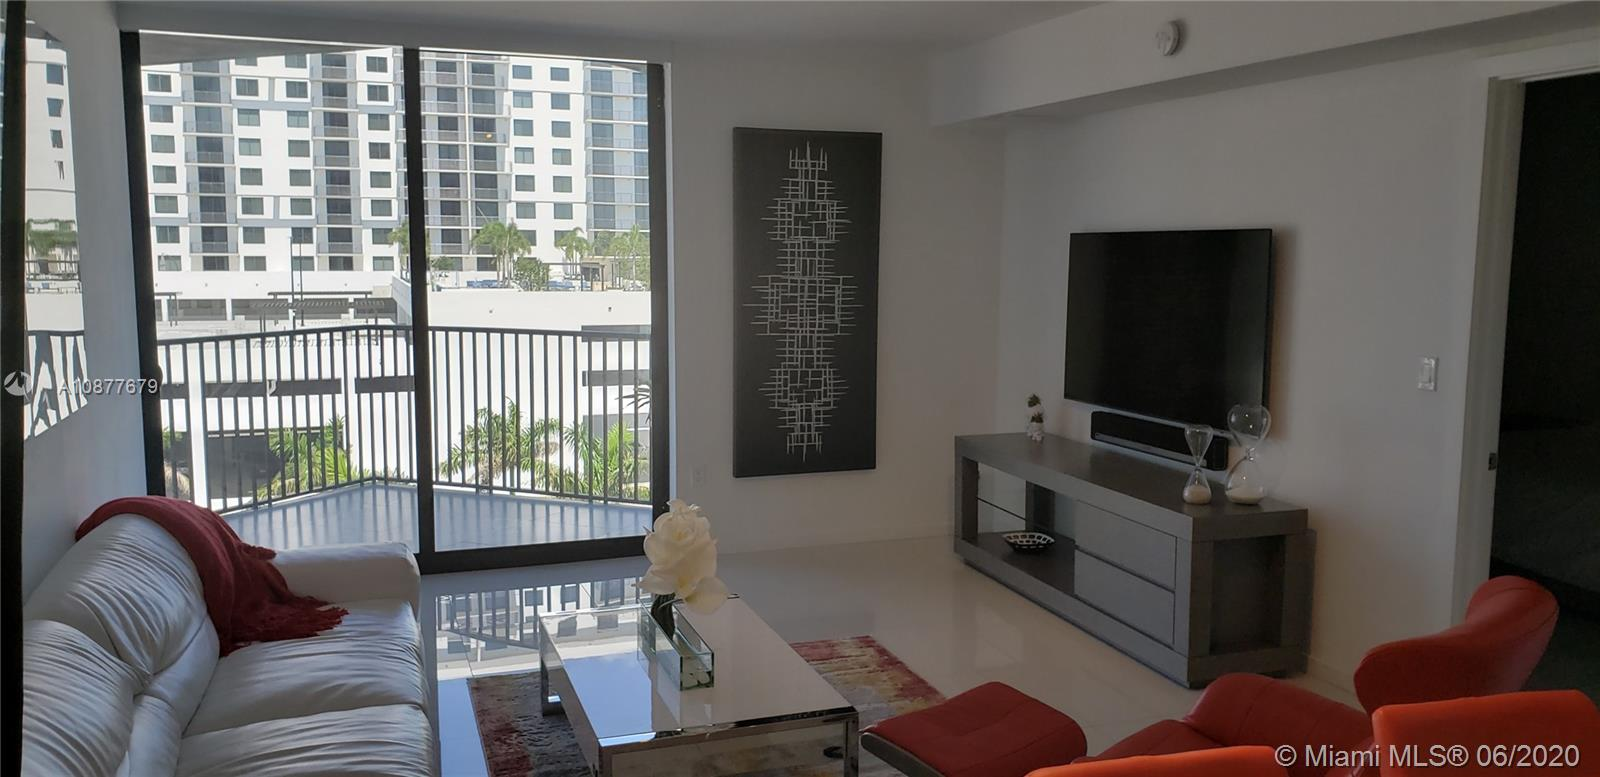 5252 NW Paseo Blvd. #405 For Sale A10877679, FL